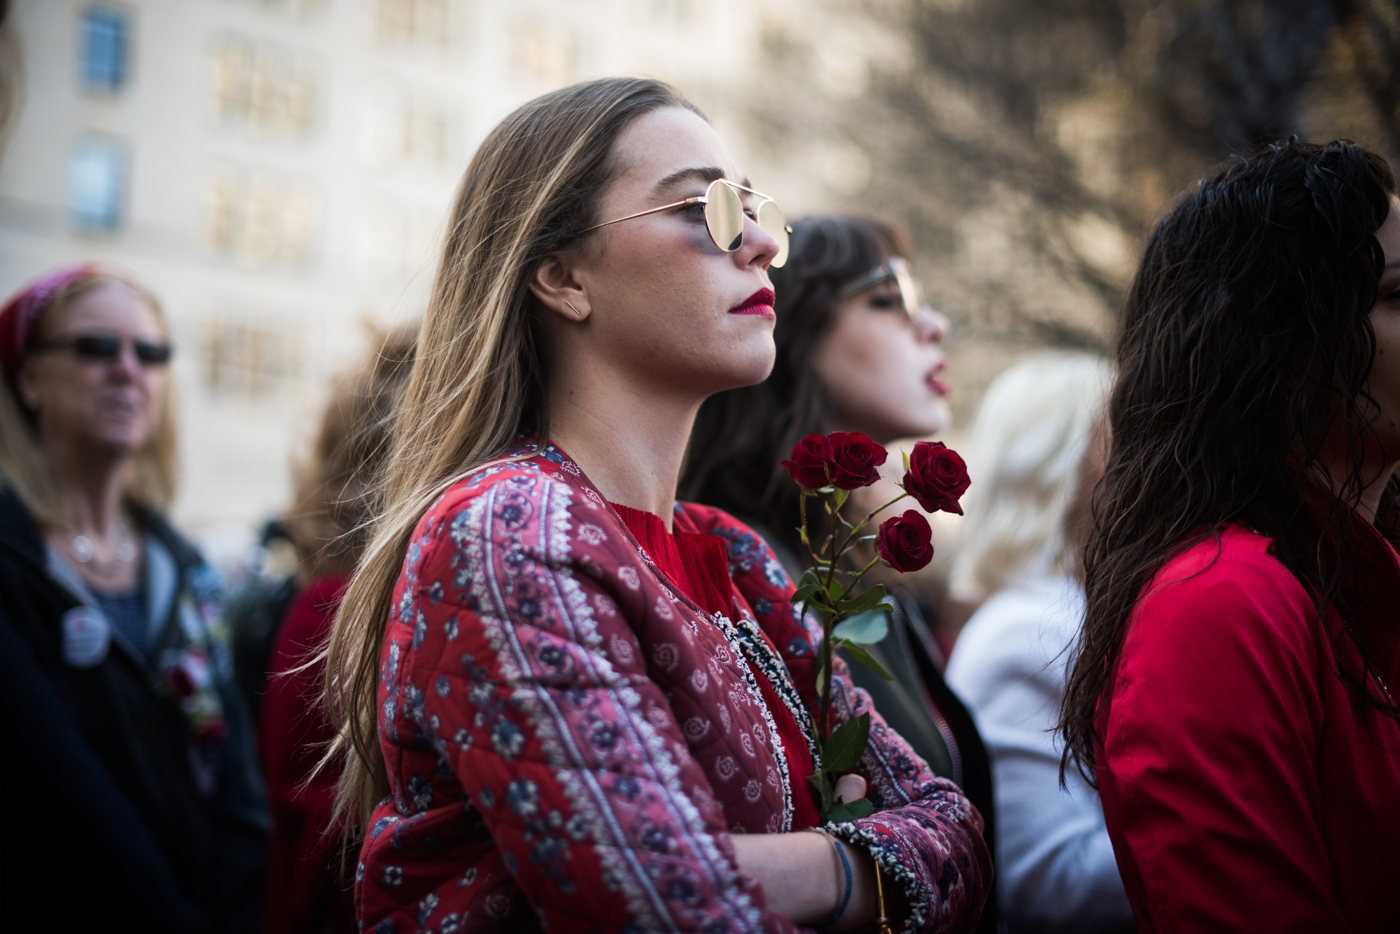 A woman stands in the crowd and listens to speakers during an International Women's Day rally and march in New York, NY on March 8, 2017. CREDIT: Mark Kauzlarich for CNN